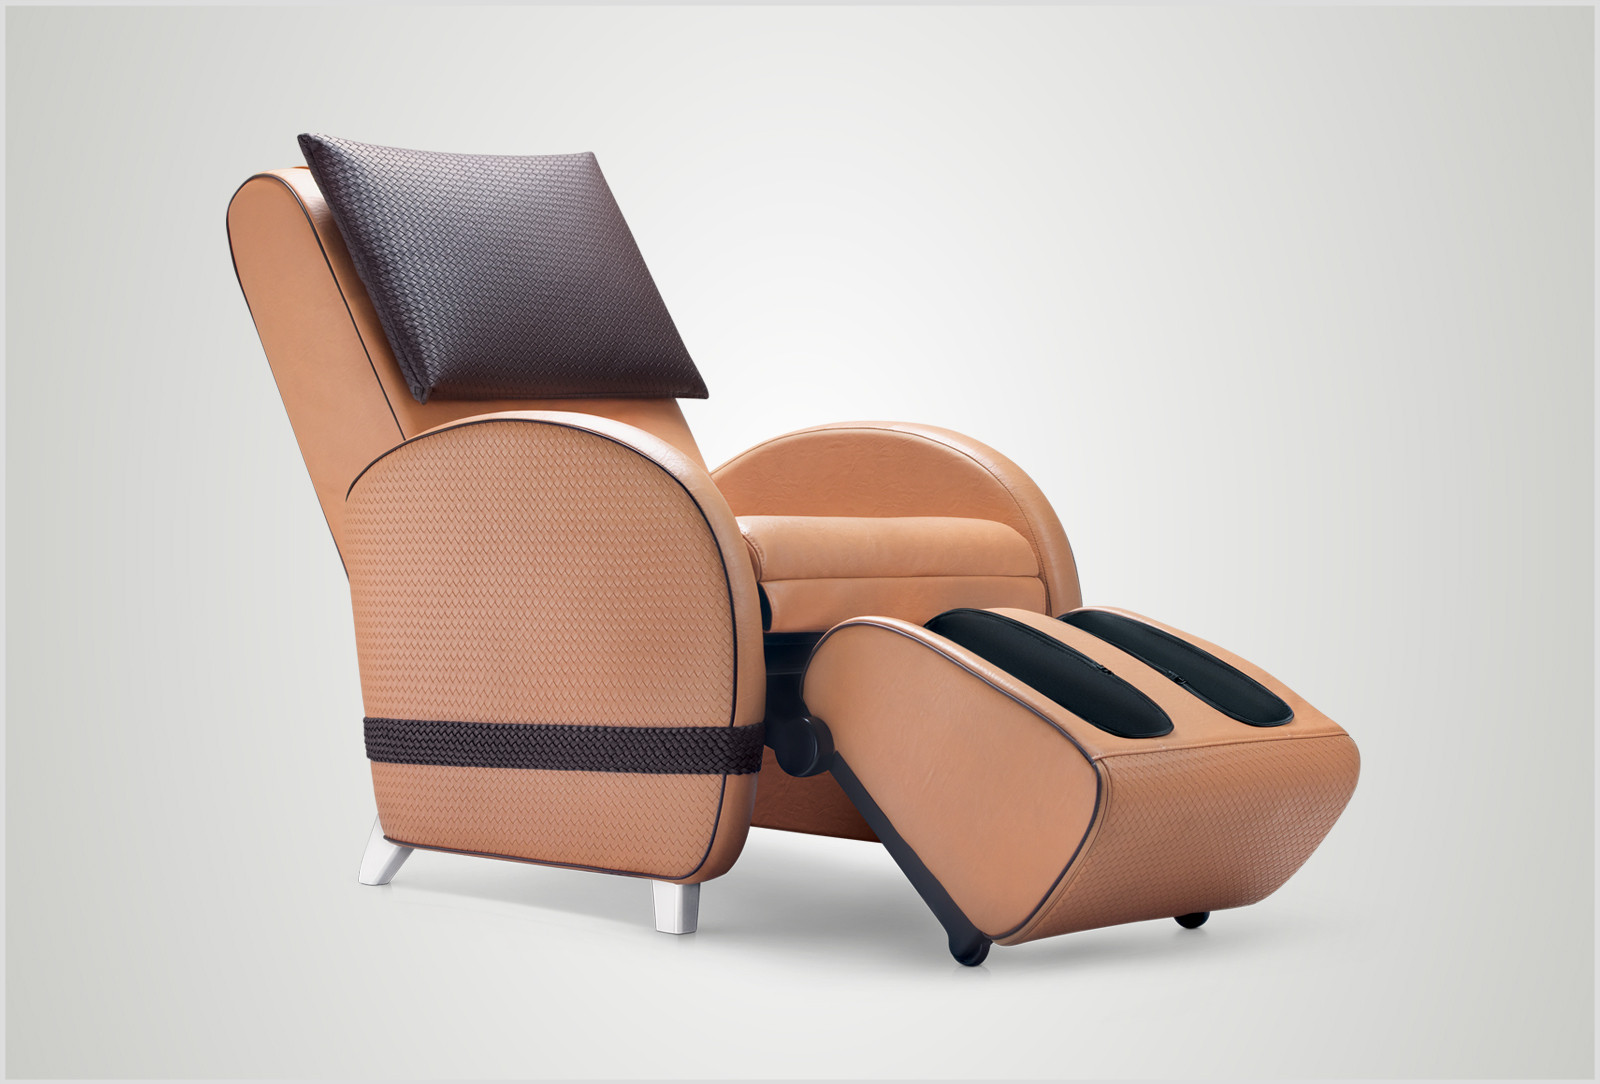 osaki comprehensive guide reviews model chair os massage osim best